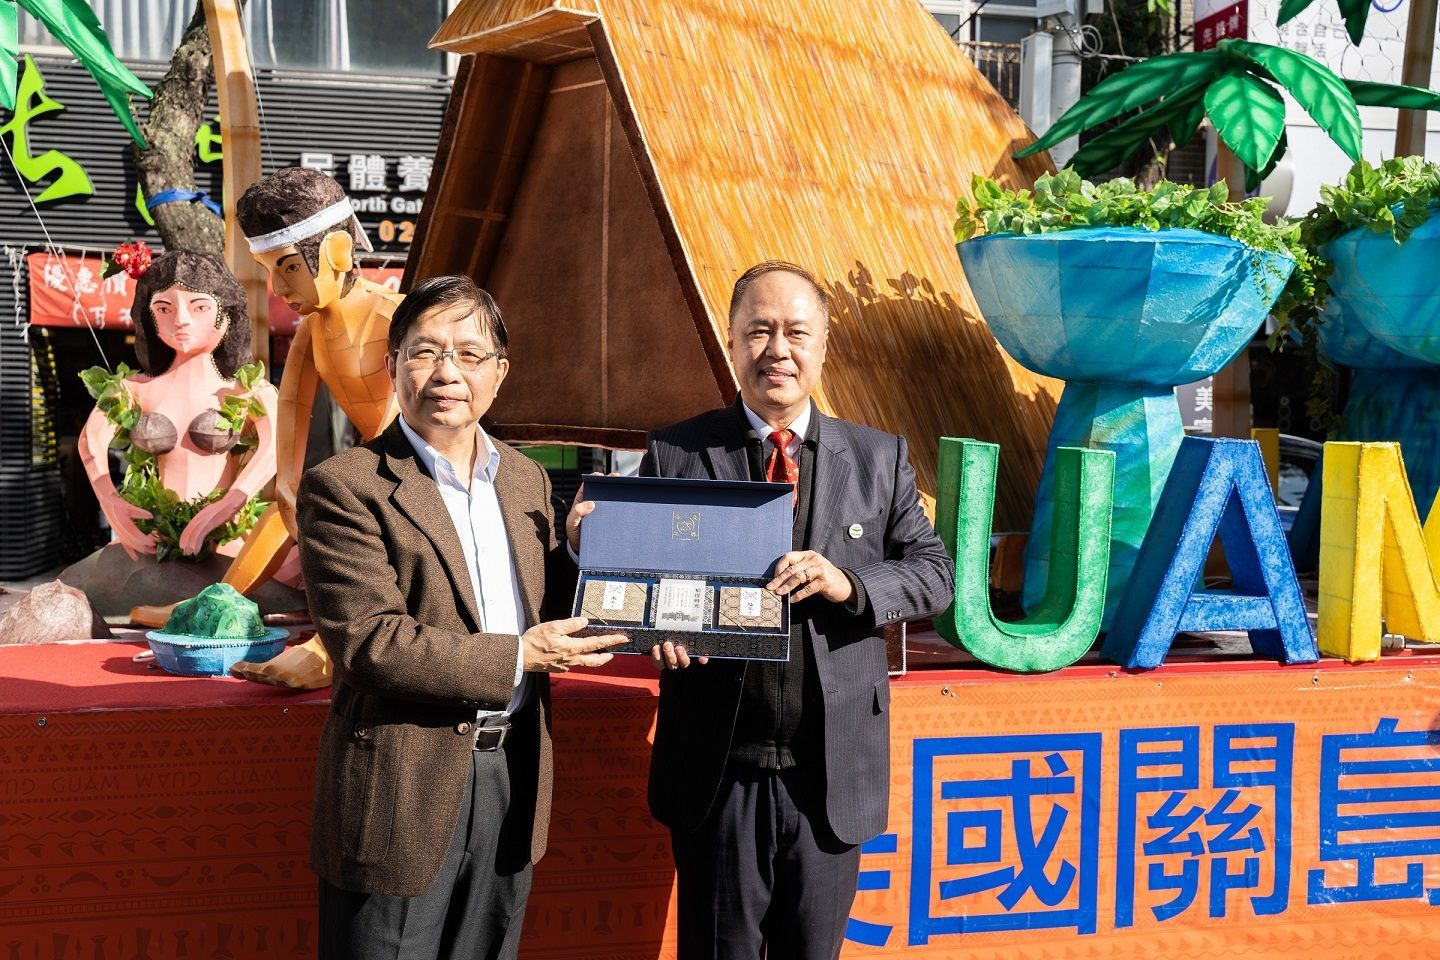 Guam's theme lantern showcased at this year's Taipei Lantern Festival